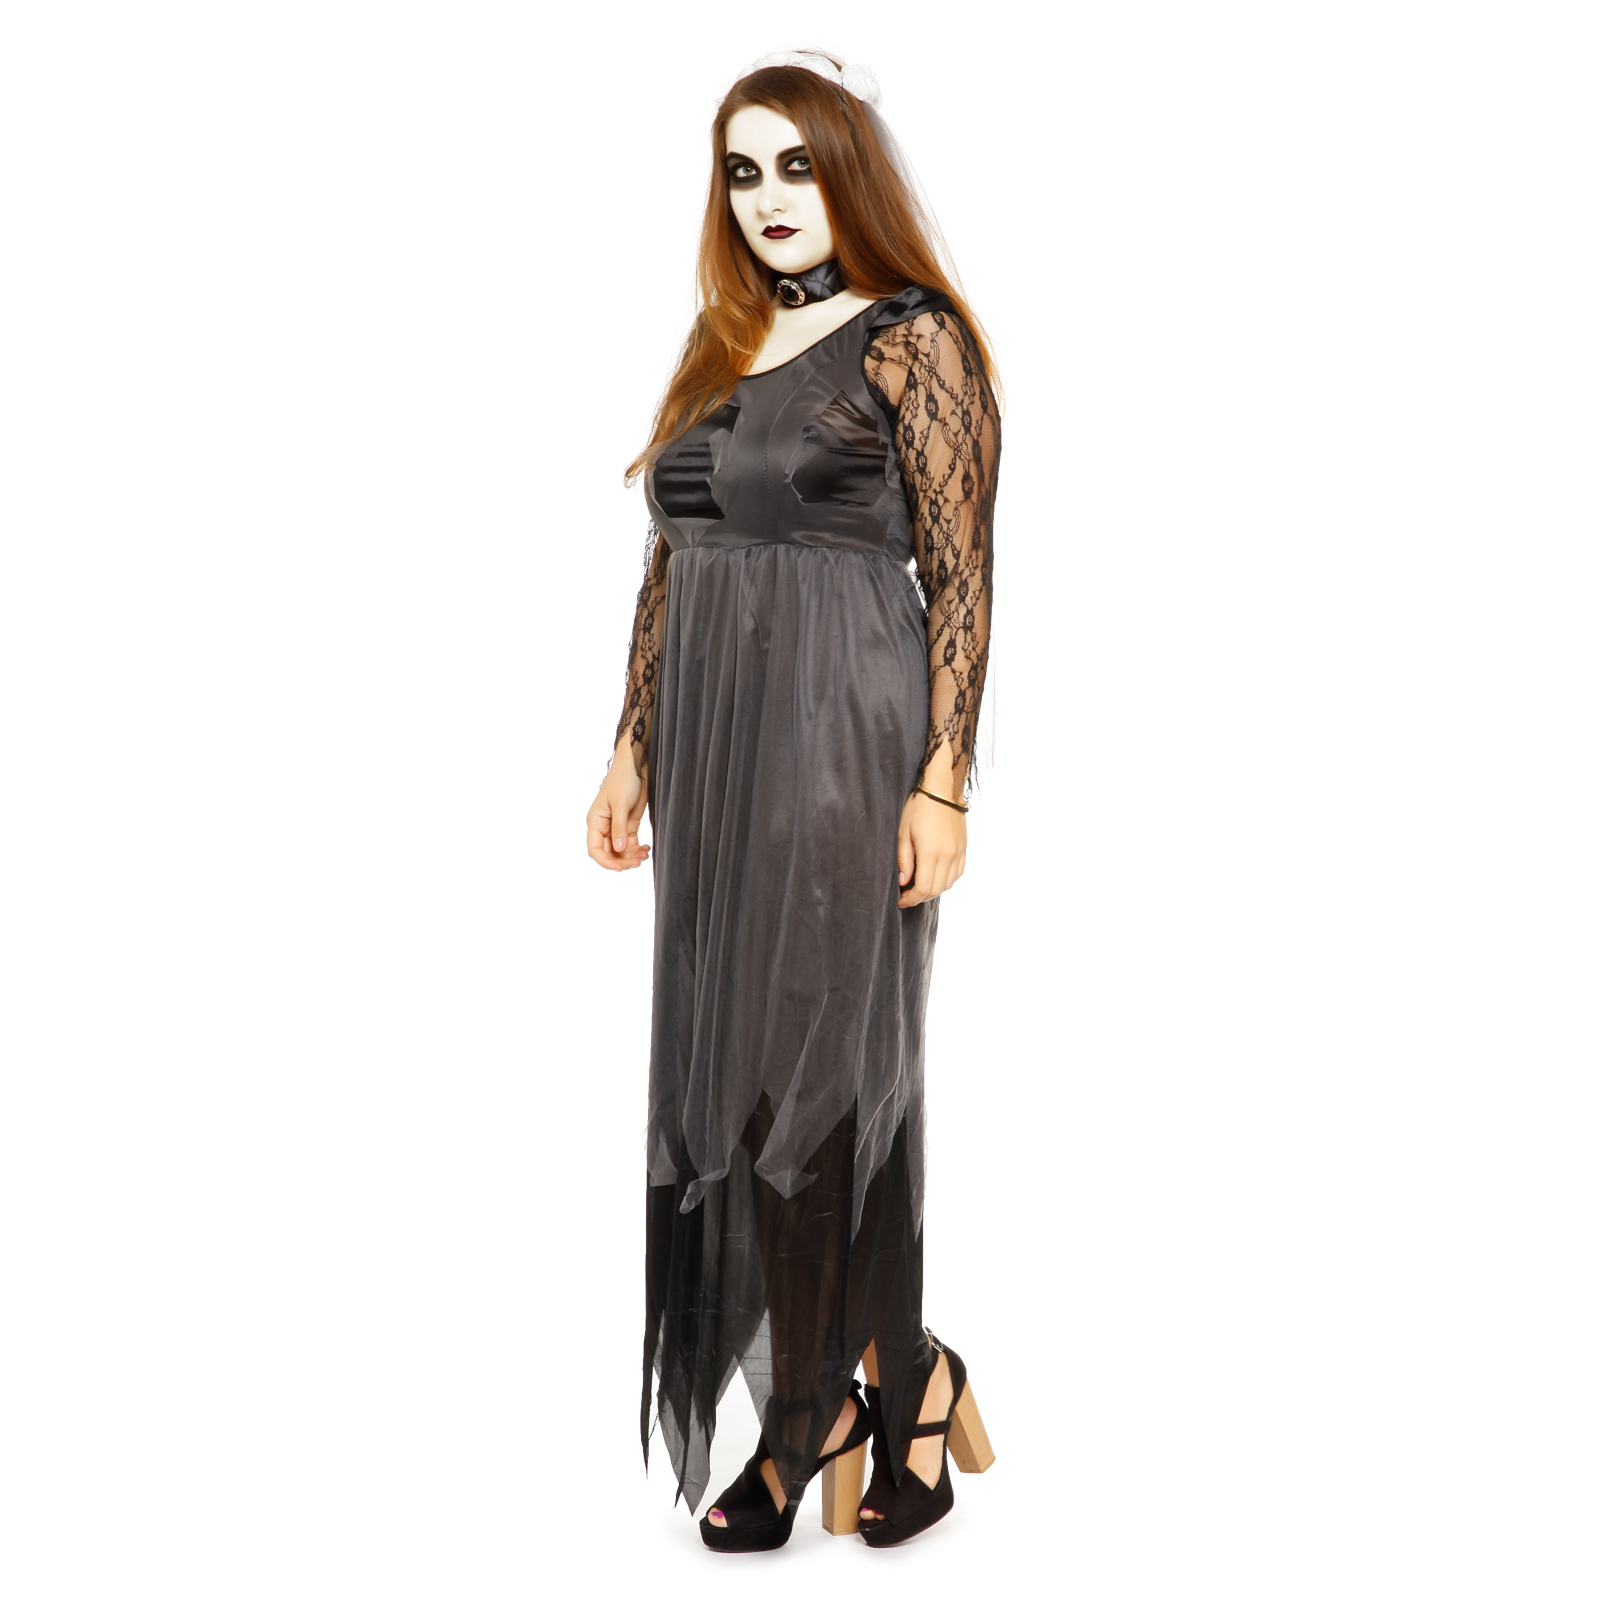 robe noir longue de deguisement fantome mariee zombie pr femme halloween l xxl ebay. Black Bedroom Furniture Sets. Home Design Ideas